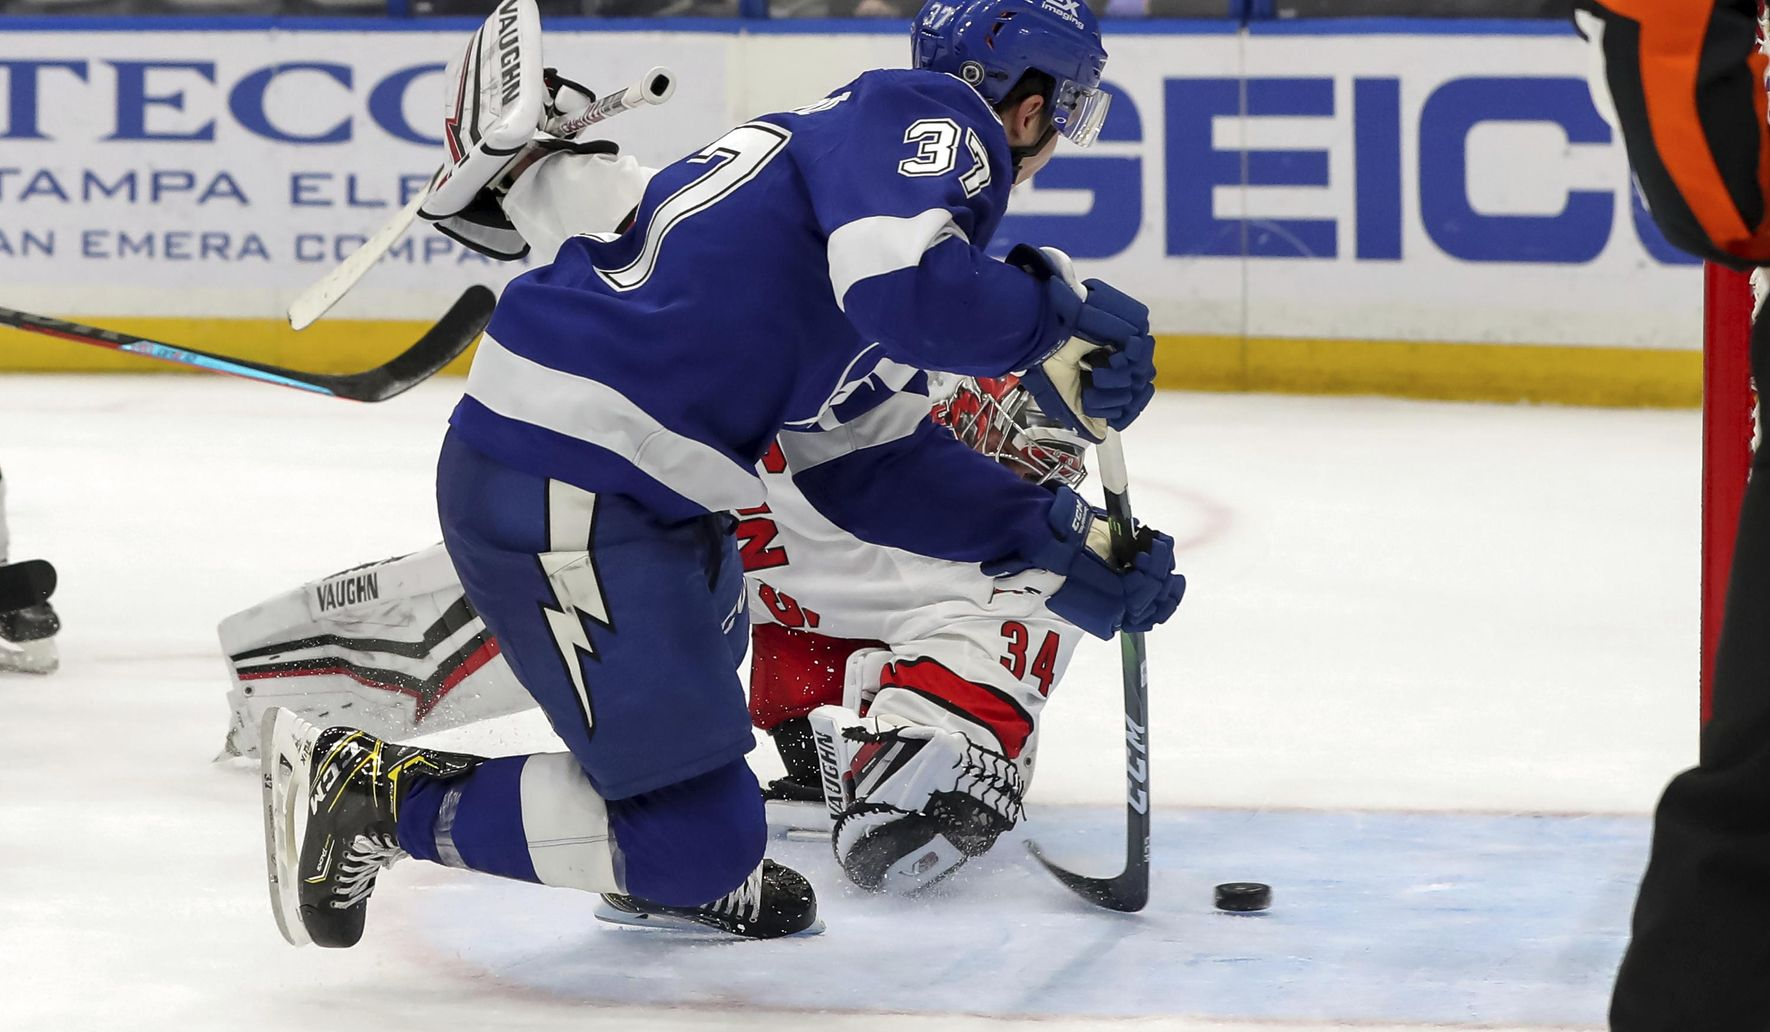 Hurricanes_lightning_hockey_26030_c0-125-3000-1874_s1770x1032